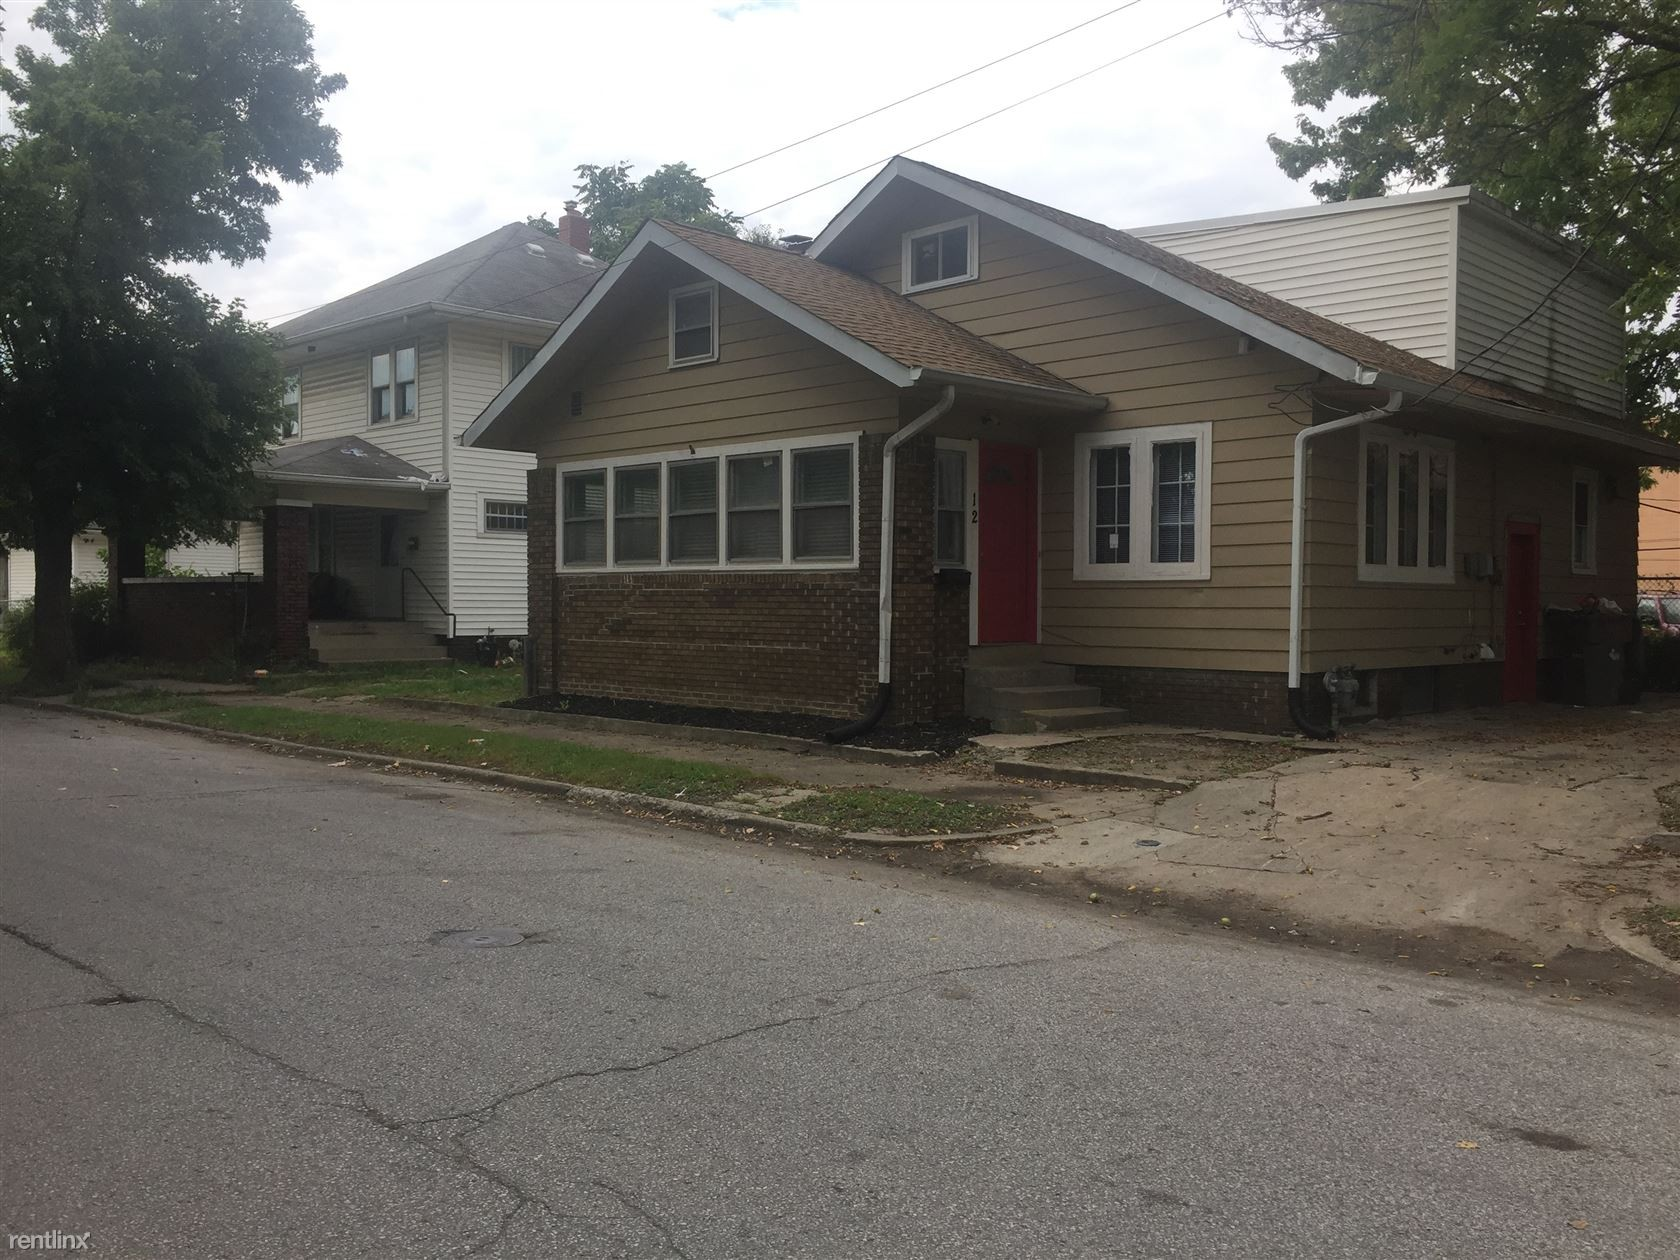 2206 W Mccarty St Indianapolis In 46221 3 Bedroom